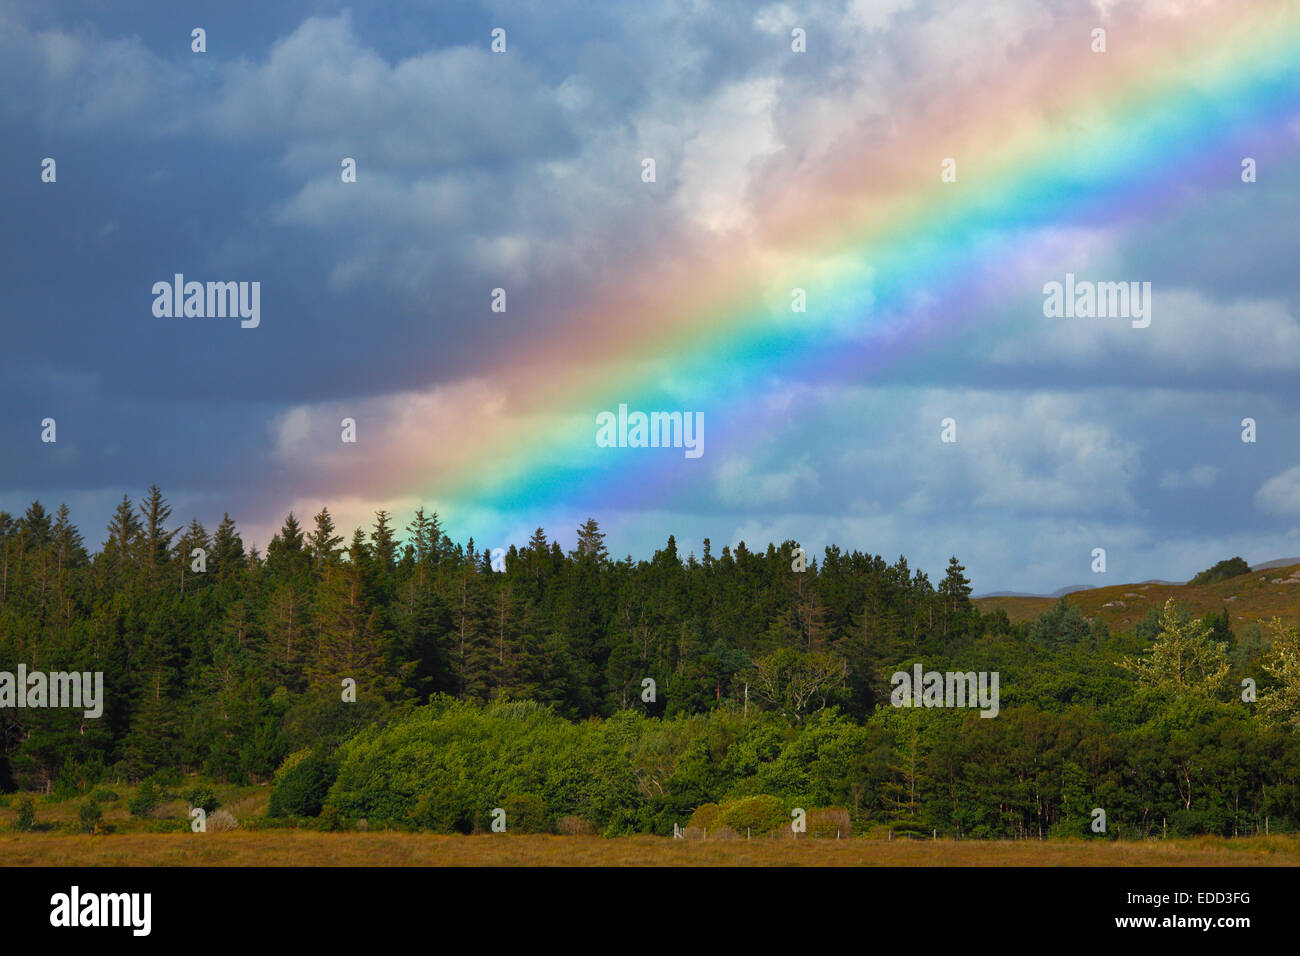 rainbow over the forest in the Glenveagh National Park, Donegal, Ireland - Stock Image